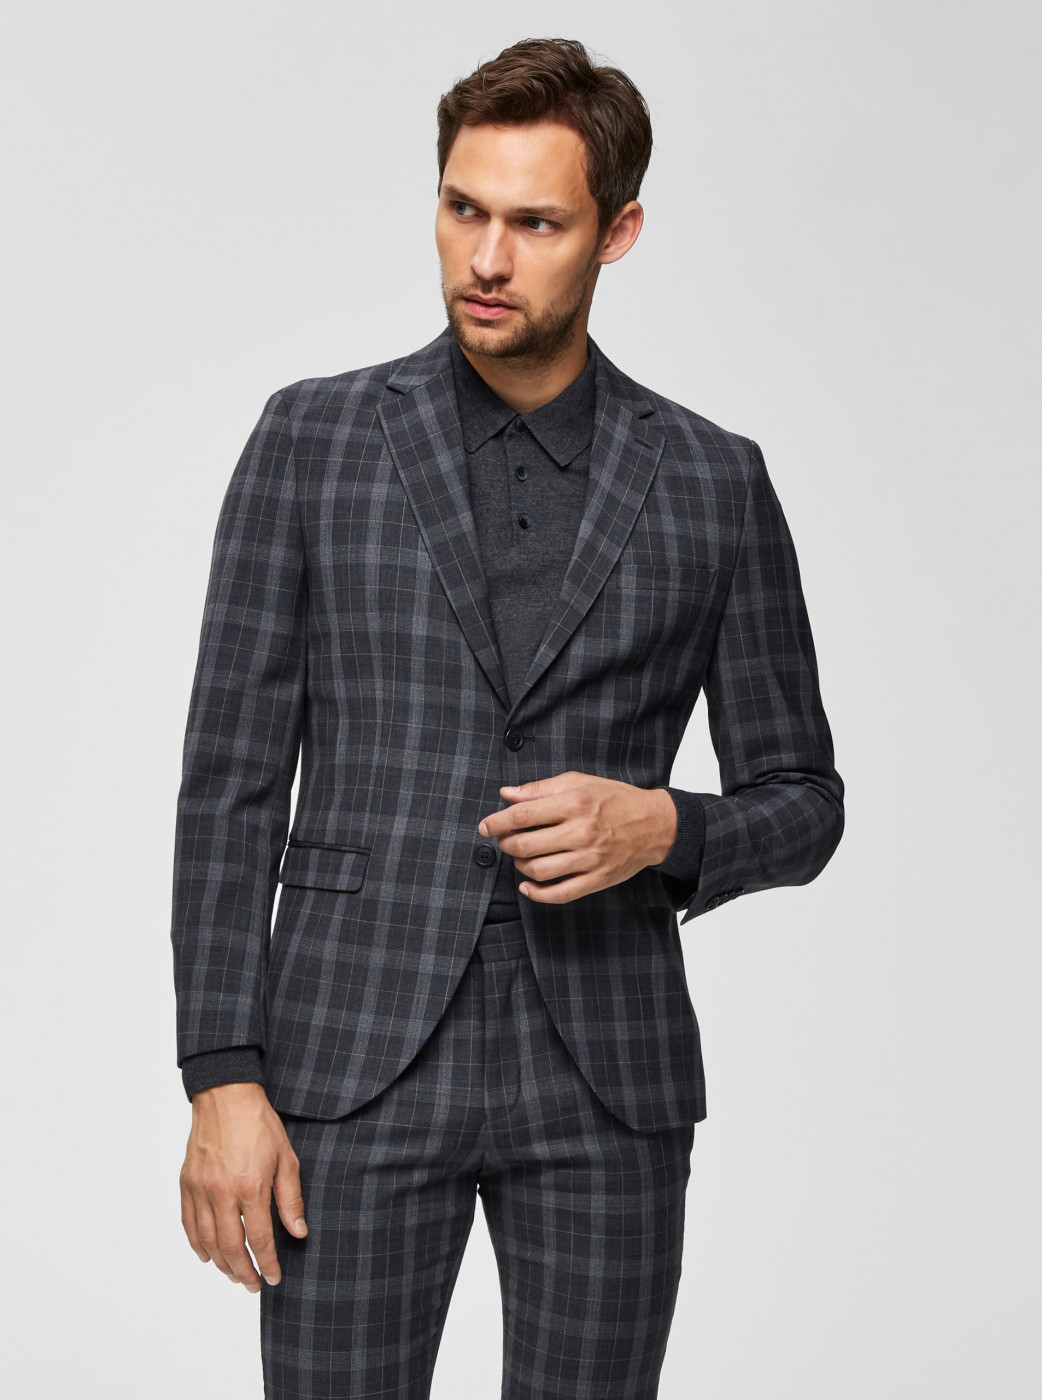 Grey Plaid Slim Fit Jacket with Admixture Wool Selected By Homme Myloport